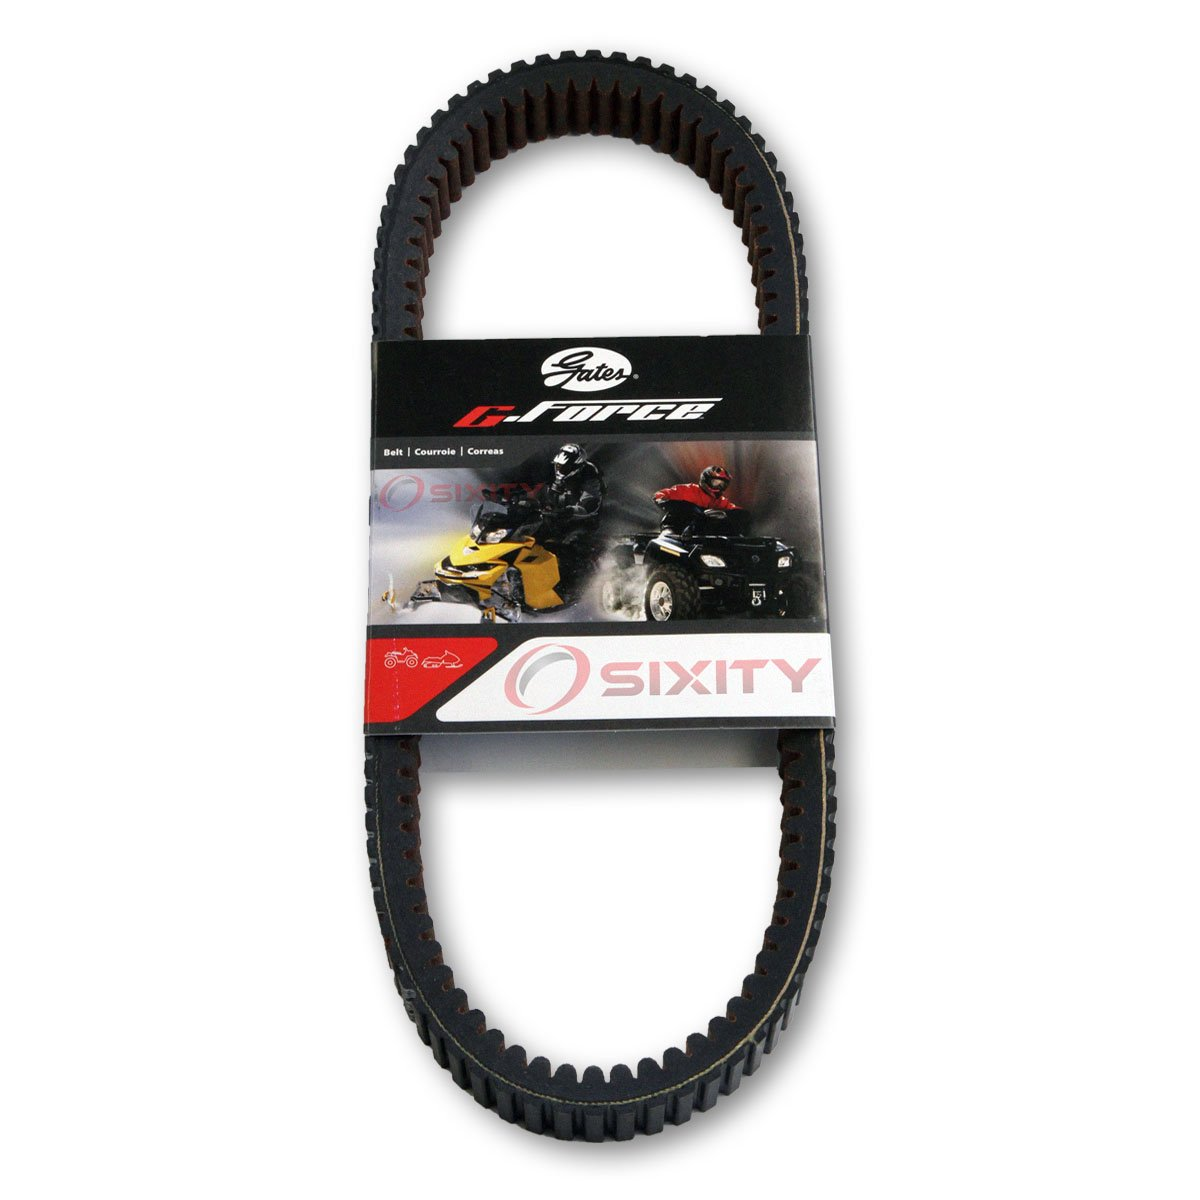 Gates Drive Belt 2015-2016 for Can-Am Maverick Max 1000R X ds G-force CVT Heavy Duty OEM Upgrade